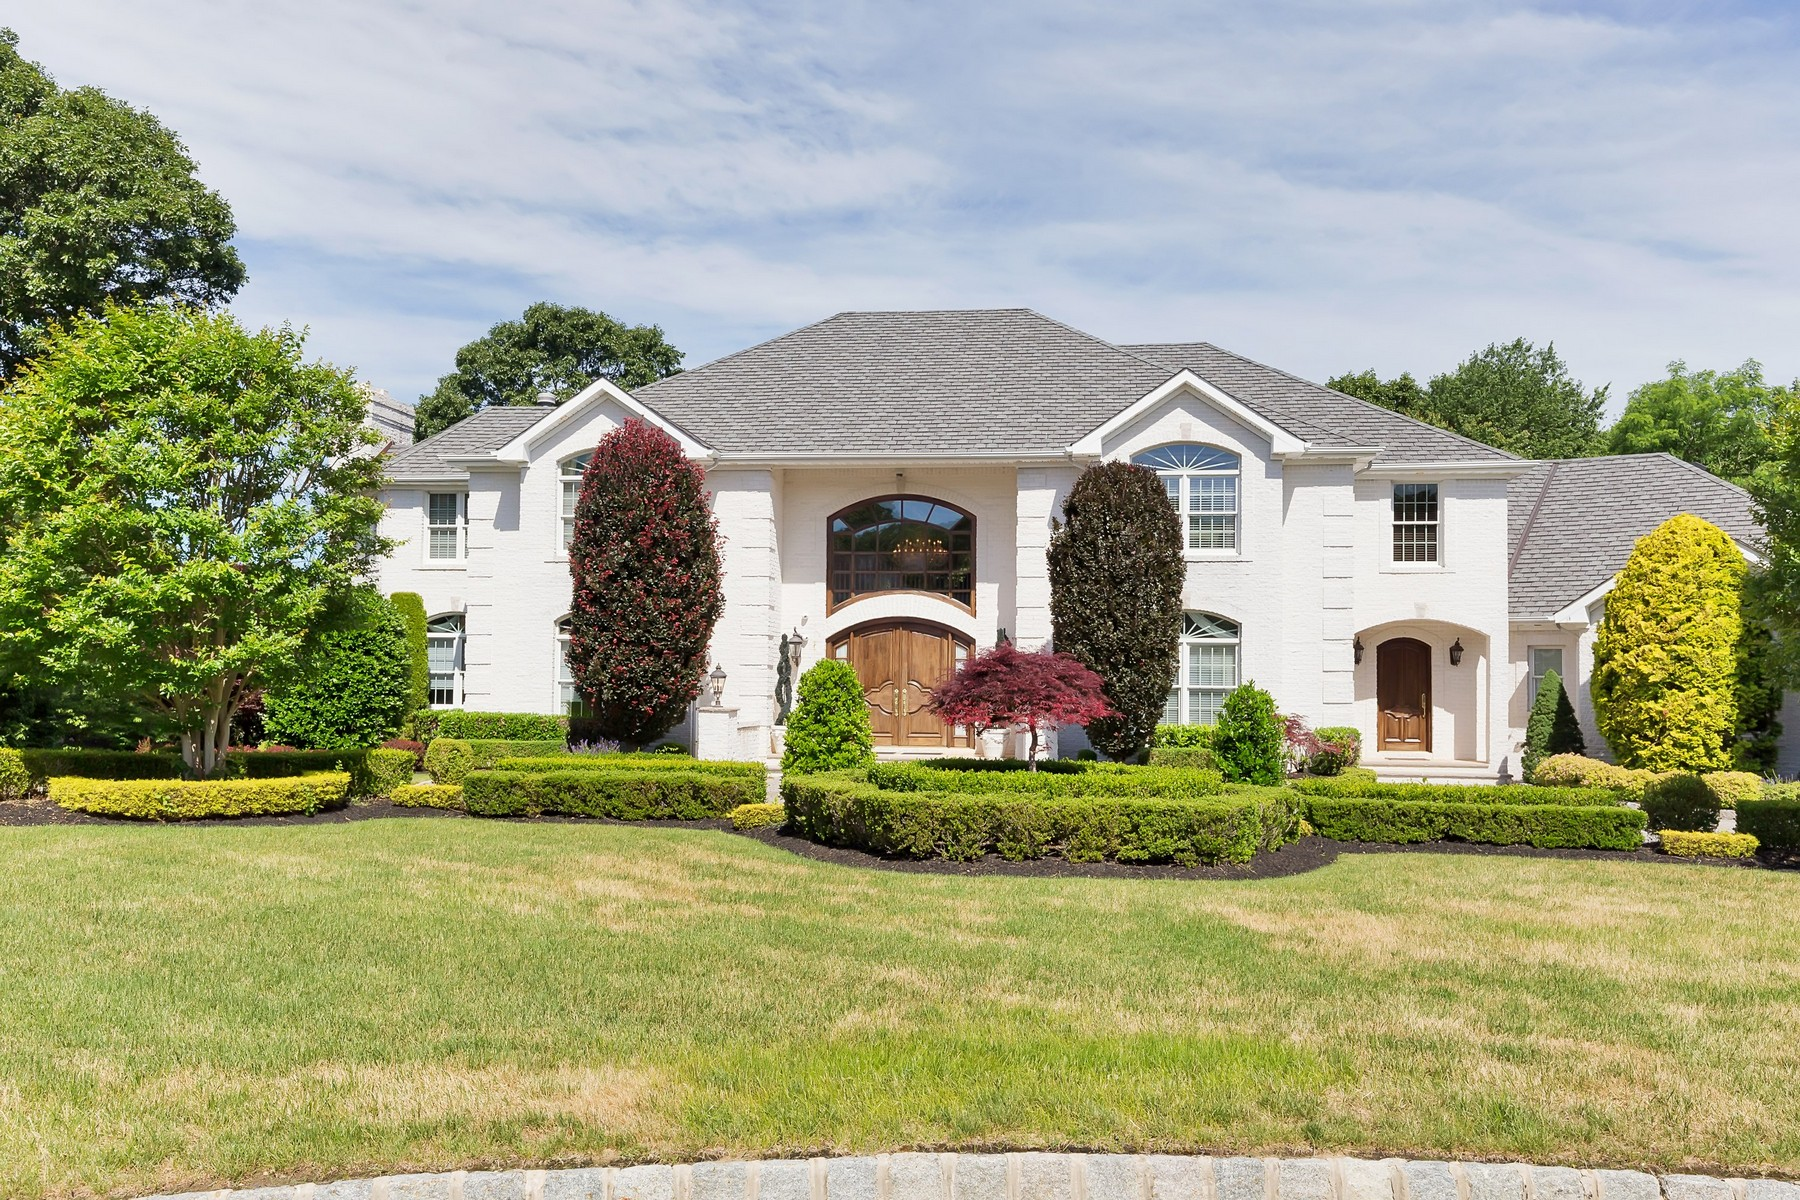 Single Family Homes for Active at Sophisticated Elegance 3 Bucks Mill Lane Holmdel, New Jersey 07733 United States